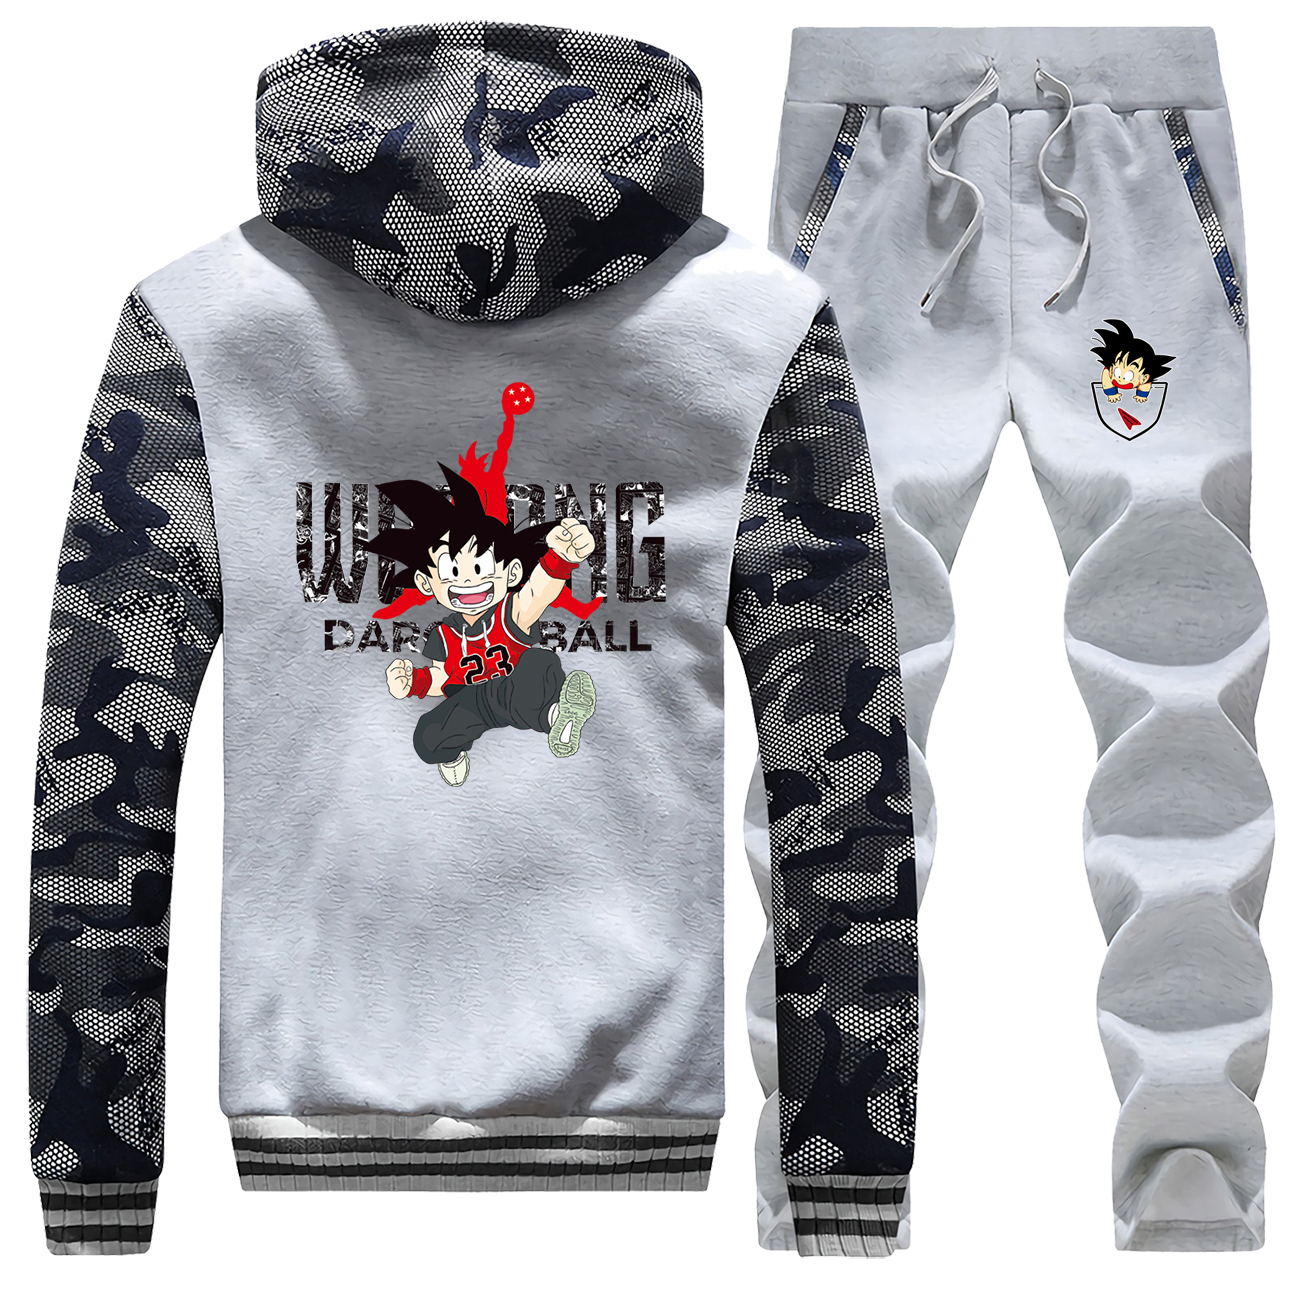 Anime Tracksuit Set Men Dragon Ball Male Sports Clothing Winter Fleece Men's Brand Streetwear Zip Hoodies Warm Trousers Harajuku